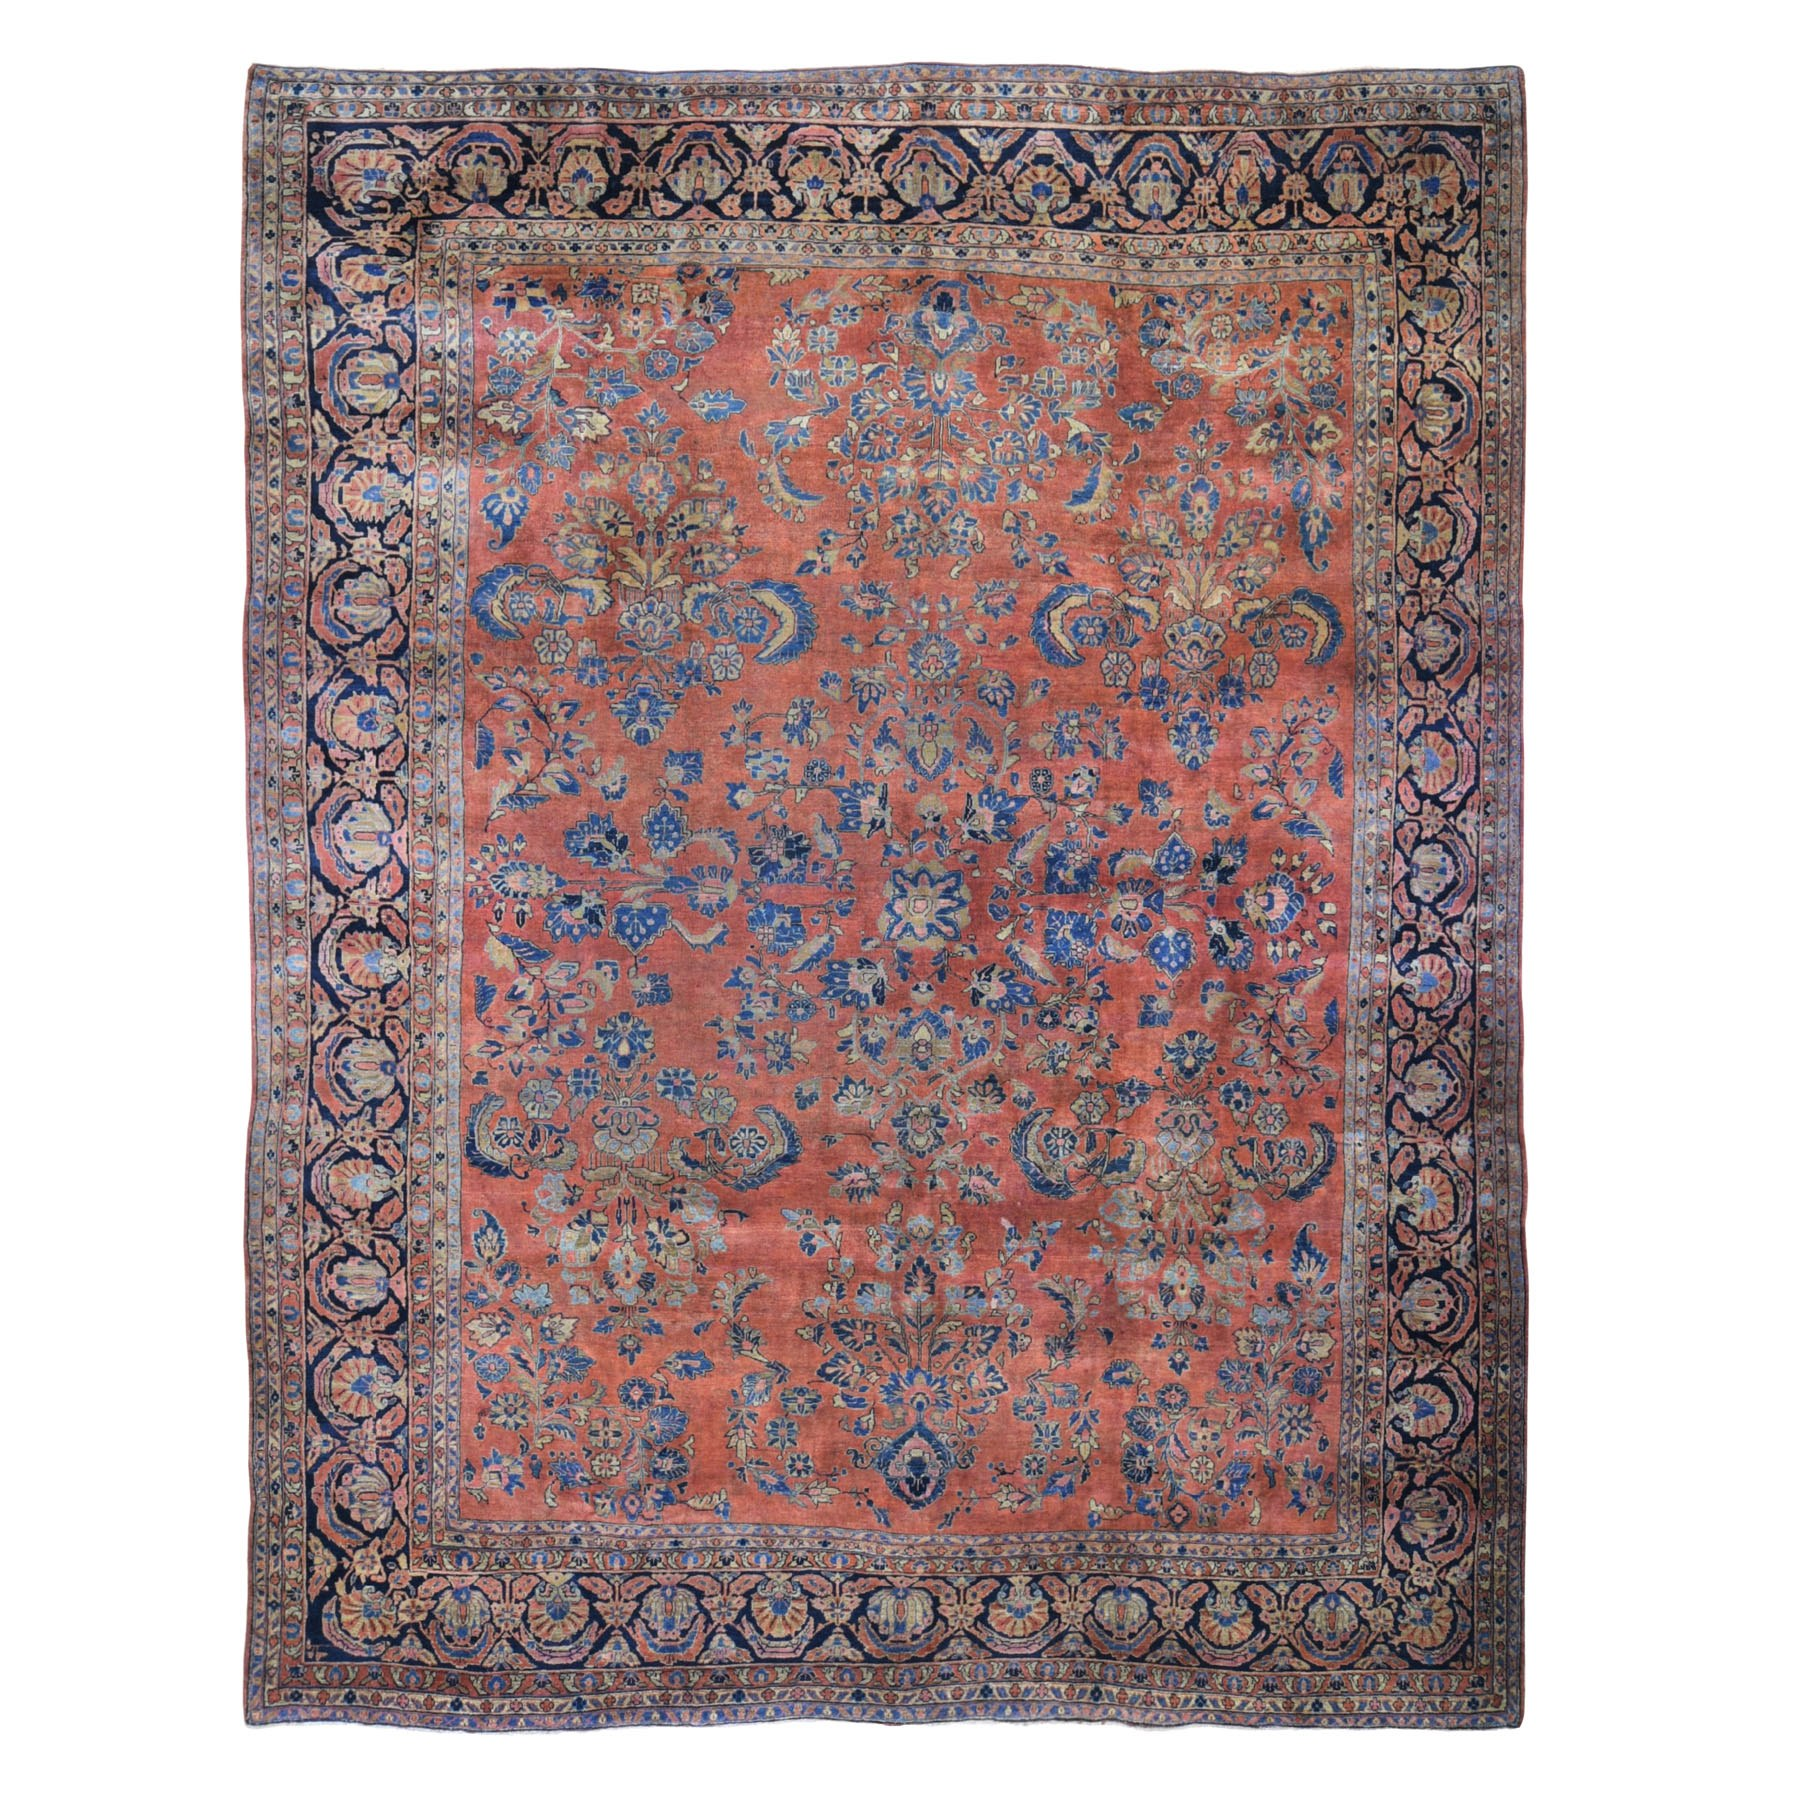 Antique Collection Hand Knotted Red Rug No: 0198600